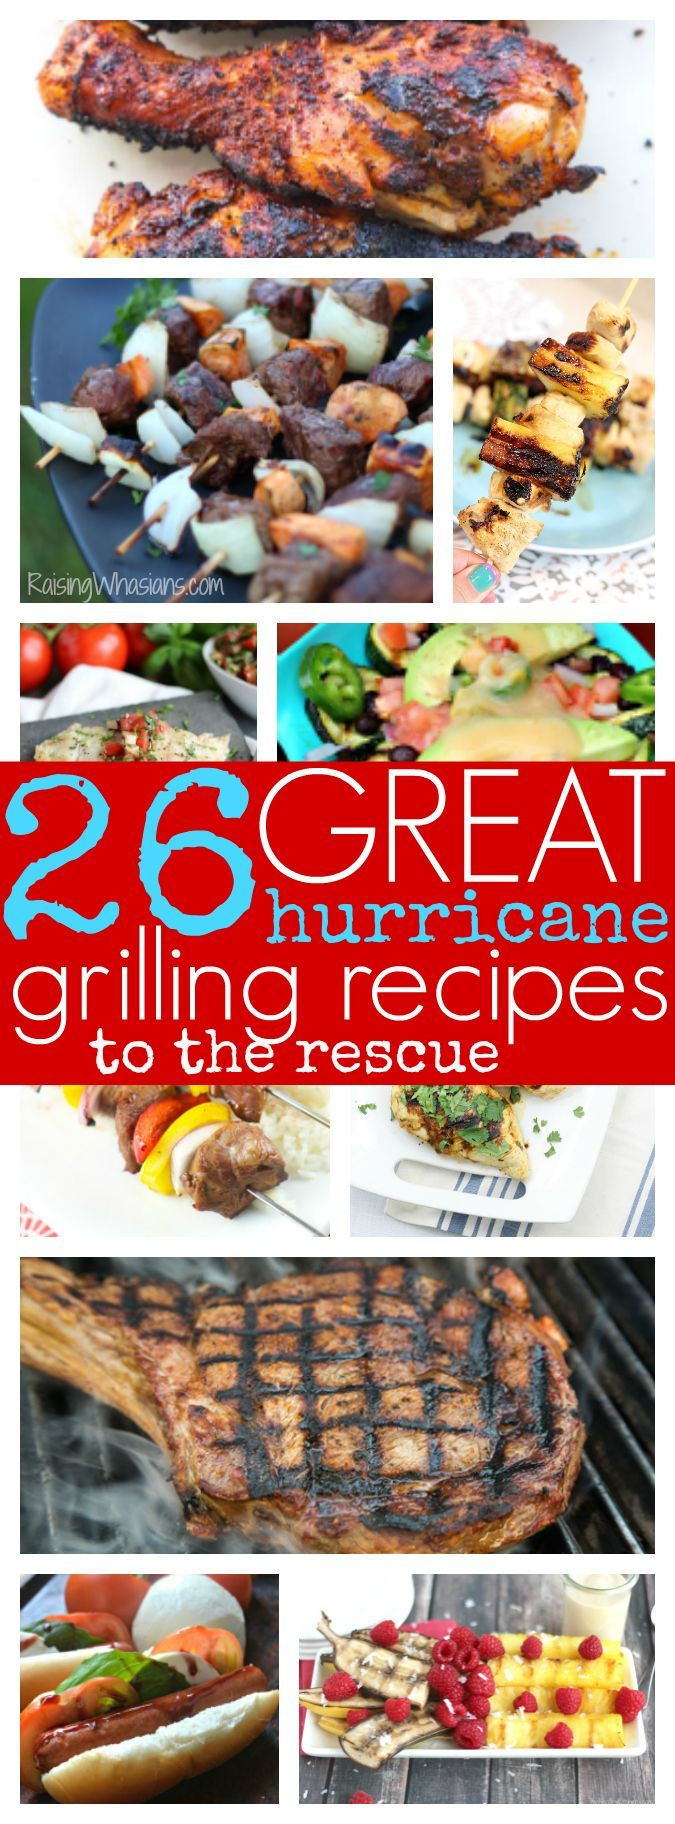 26 Hurricane Grilling Recipes to the Rescue | Don't let power outages stop you from having amazing food! Try these delicious grill recipes to keep you fed